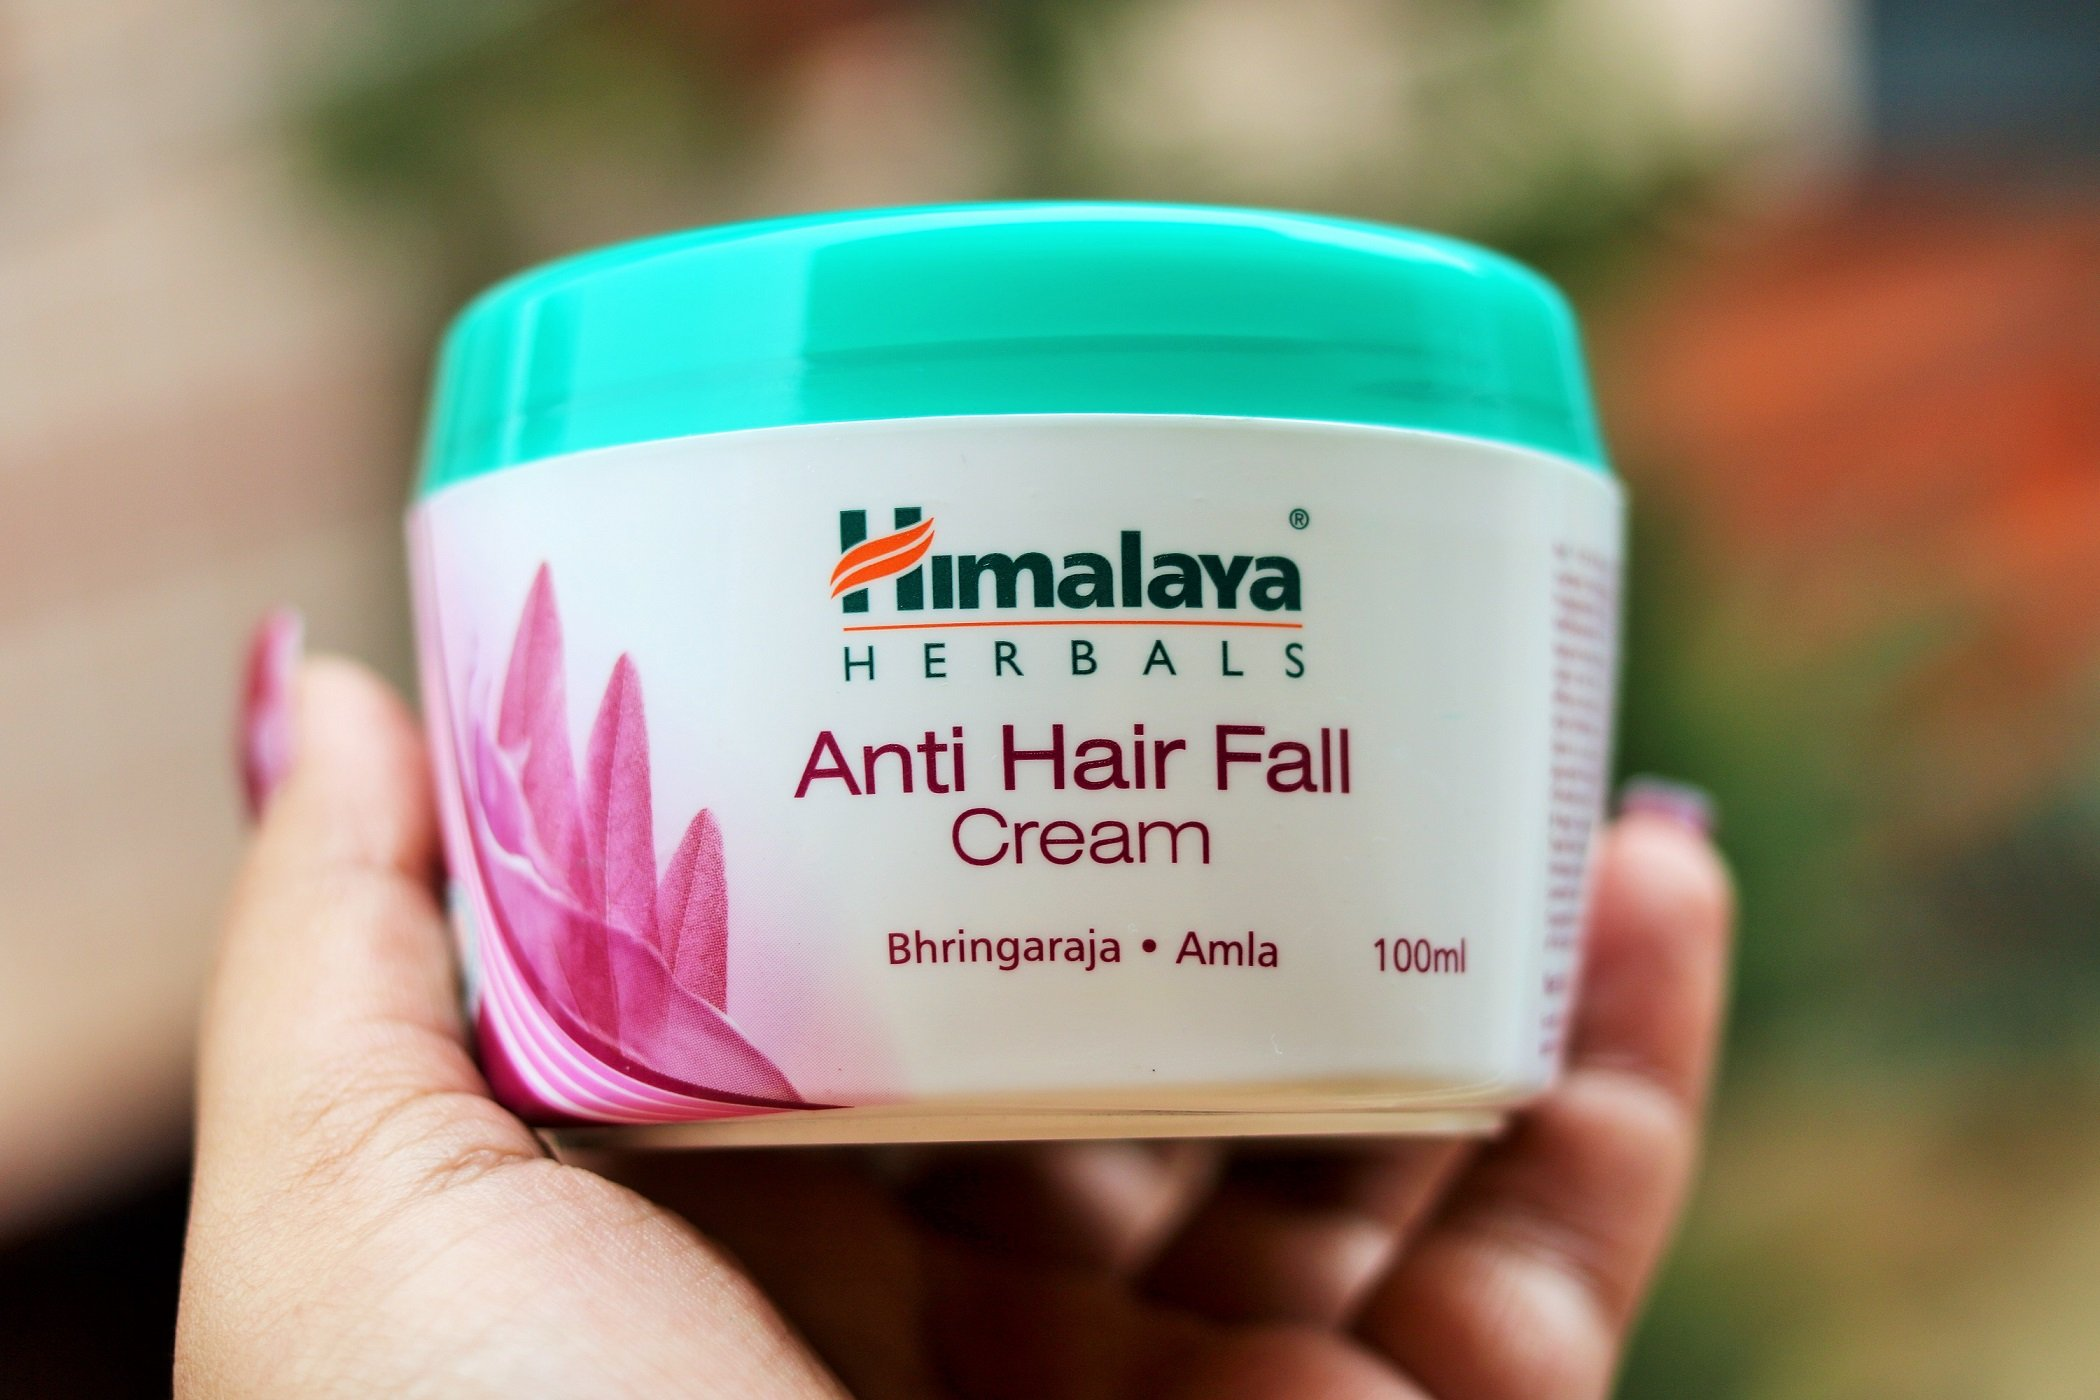 Himalaya Anti-Hair Fall Cream